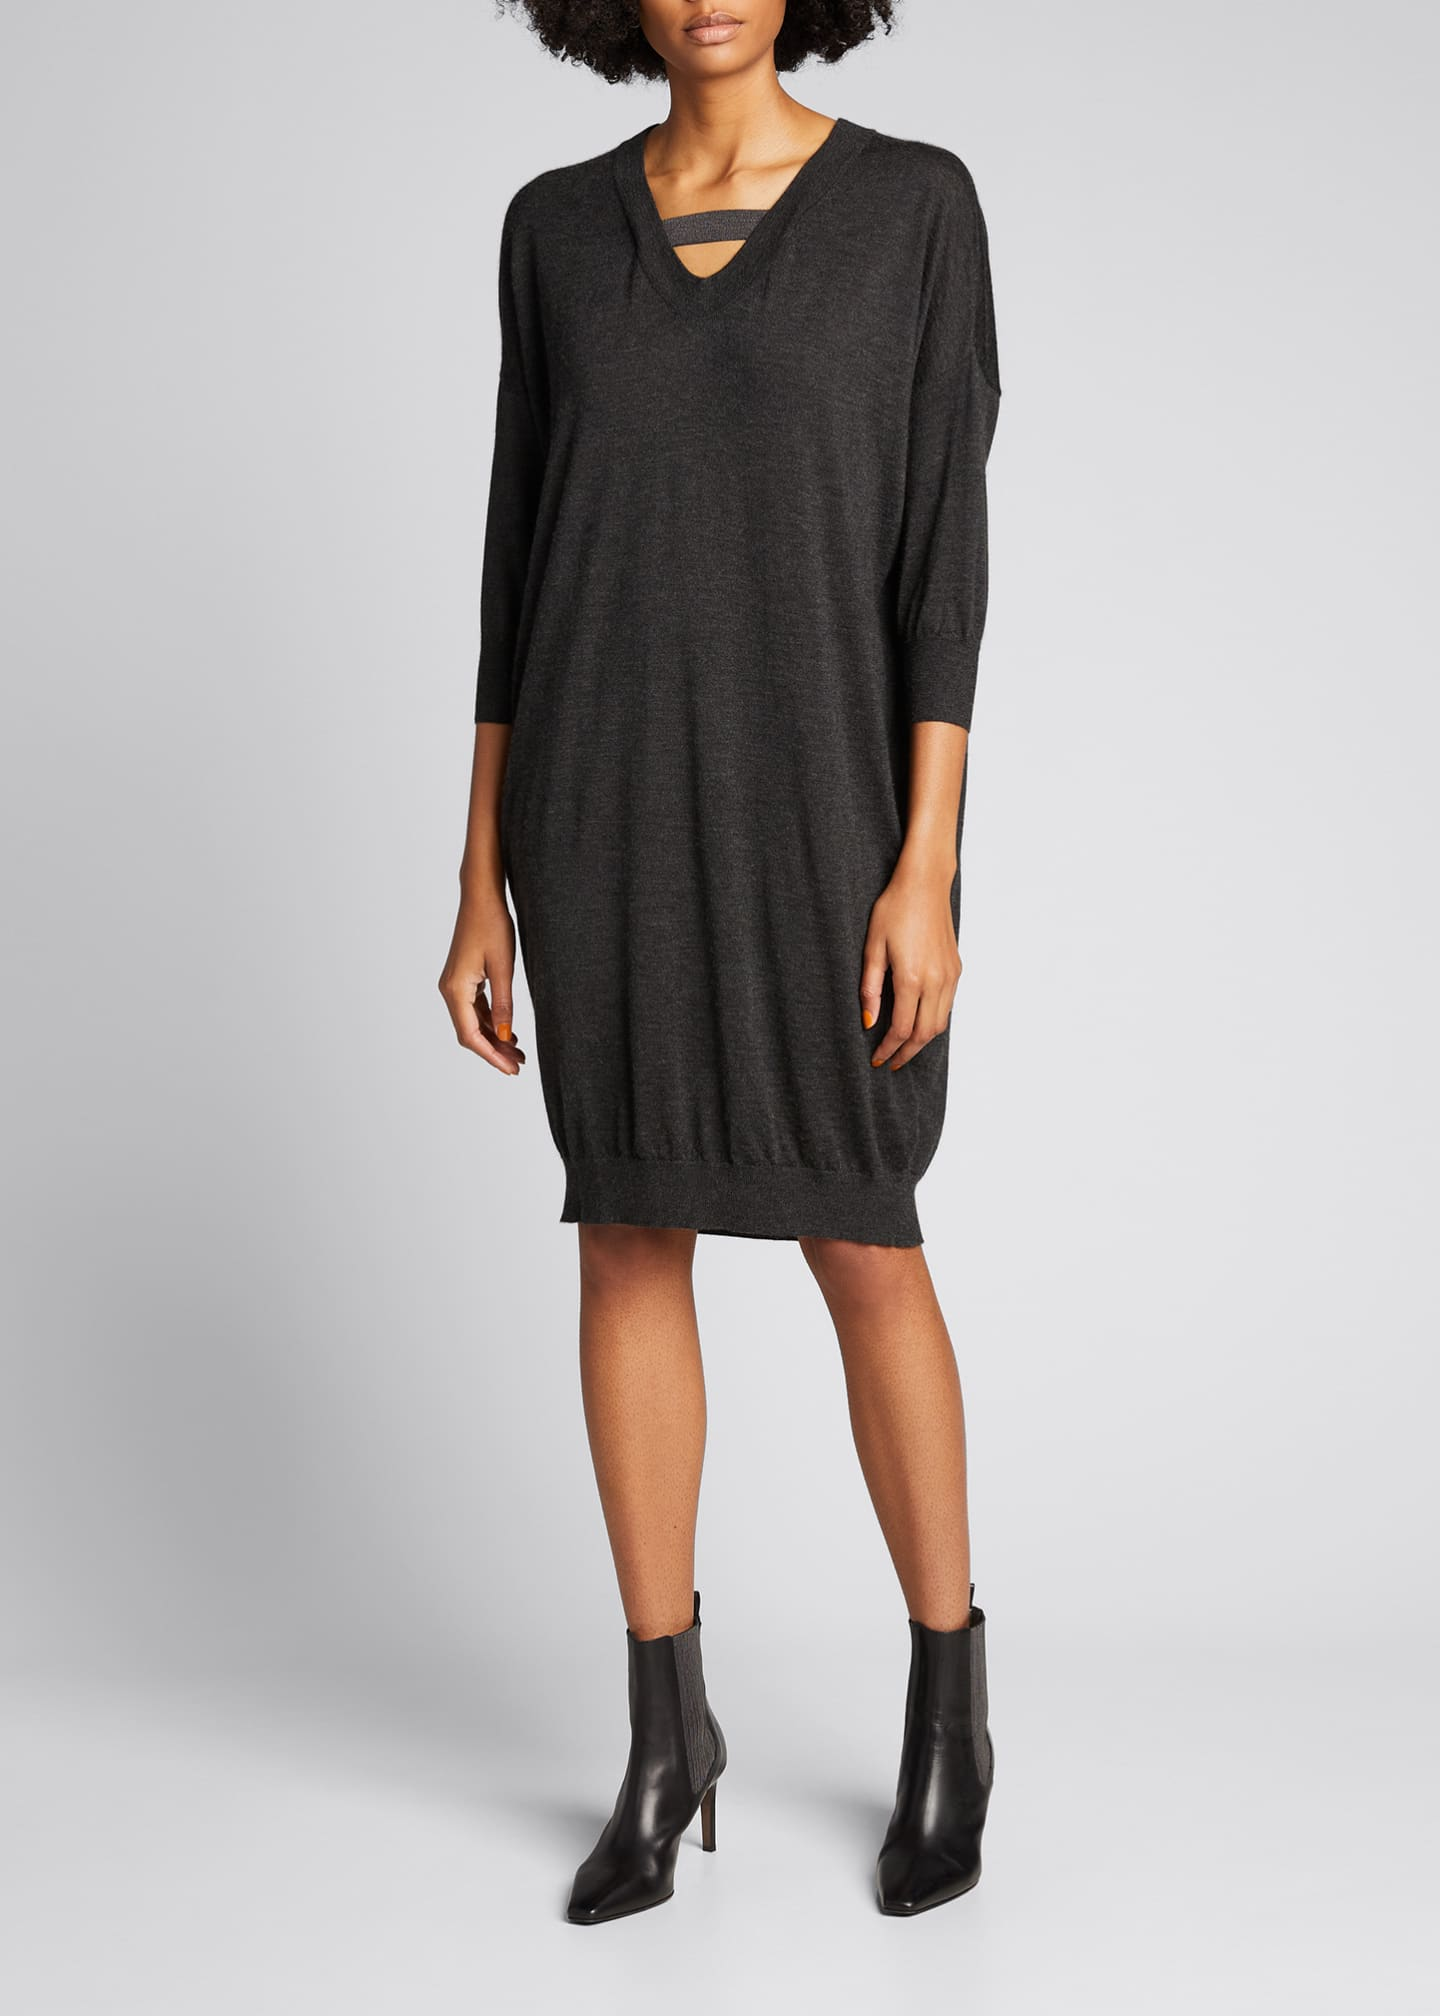 Image 3 of 5: Cashmere Silk Knit Dress with Monili Strap